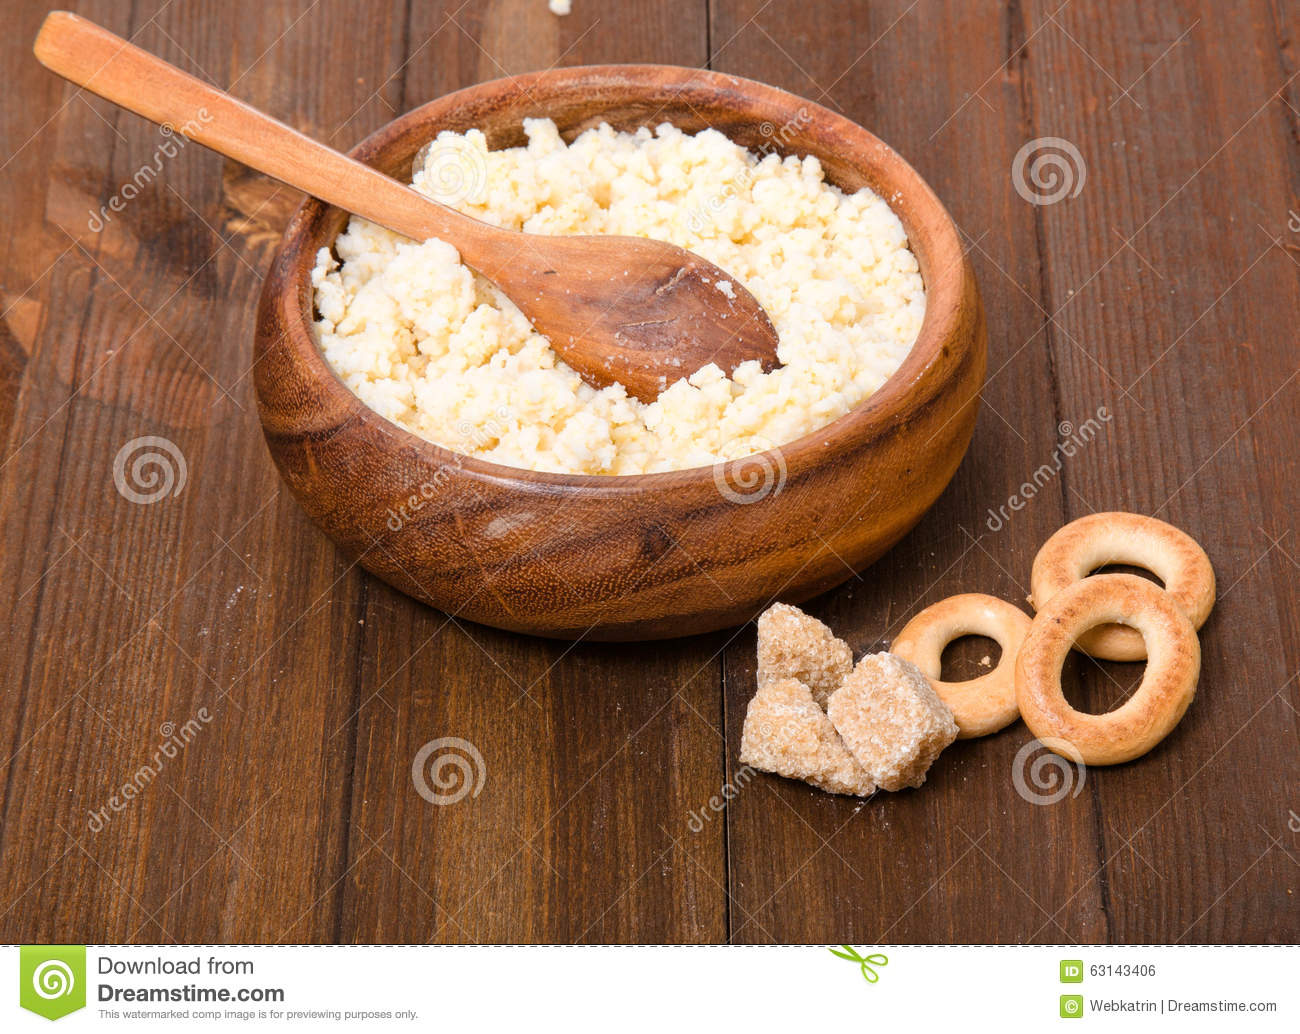 Rural Meal From Millet Cereal In A Wooden Bowl Steering Wheels Stock Photo Image Of Healthy Wheel 63143406